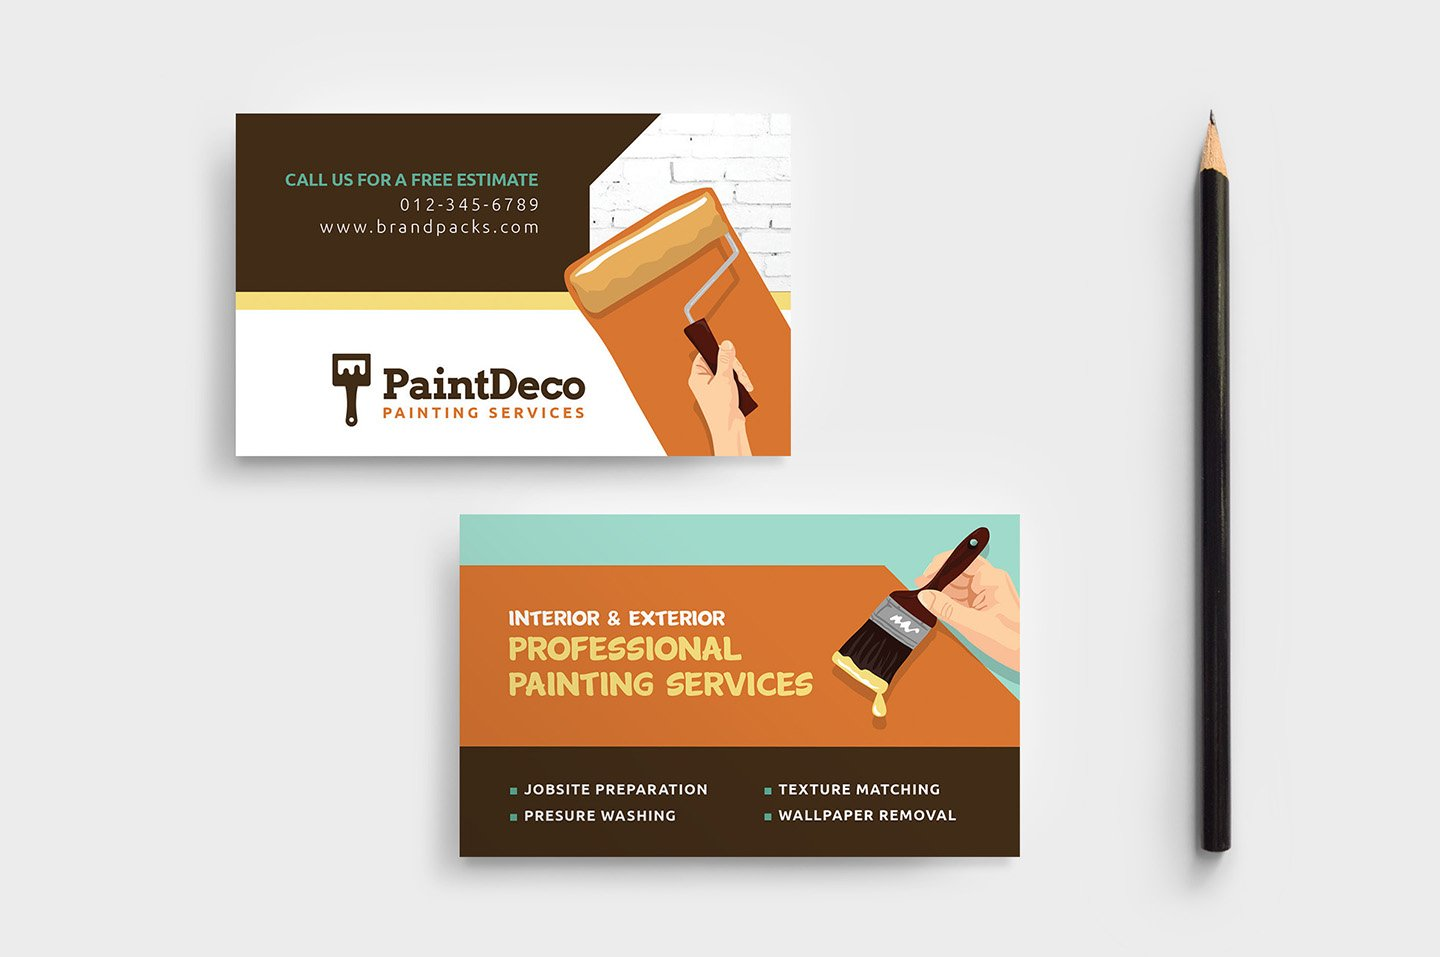 Painter decorator business card business card templates painter decorator business card business card templates creative market accmission Gallery